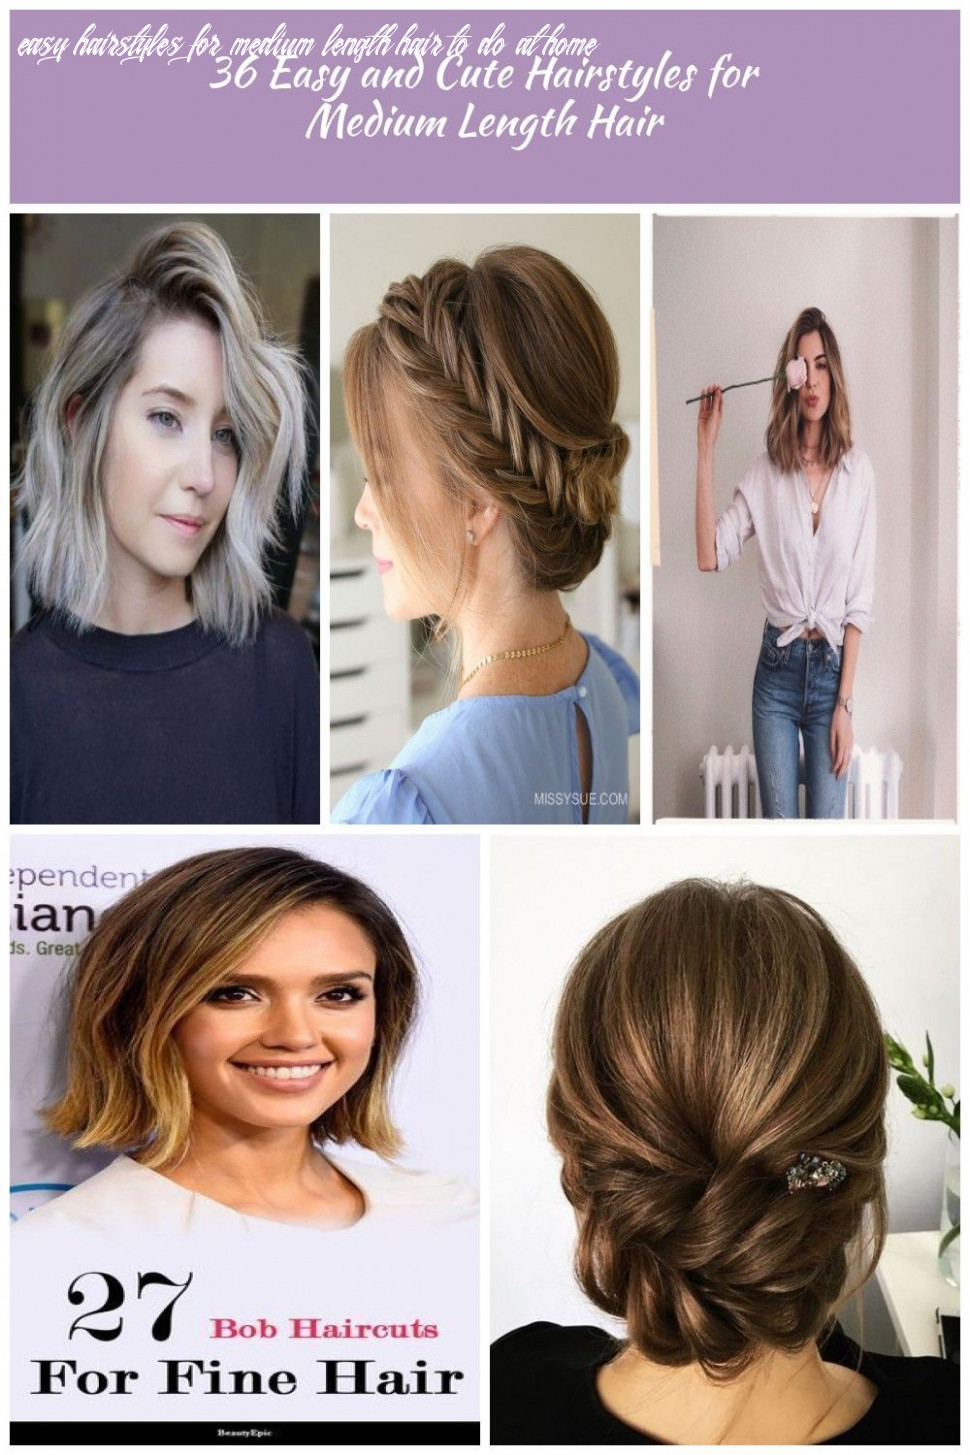 hair styles for medium length hair 10 Easy and Cute Hairstyles for ...